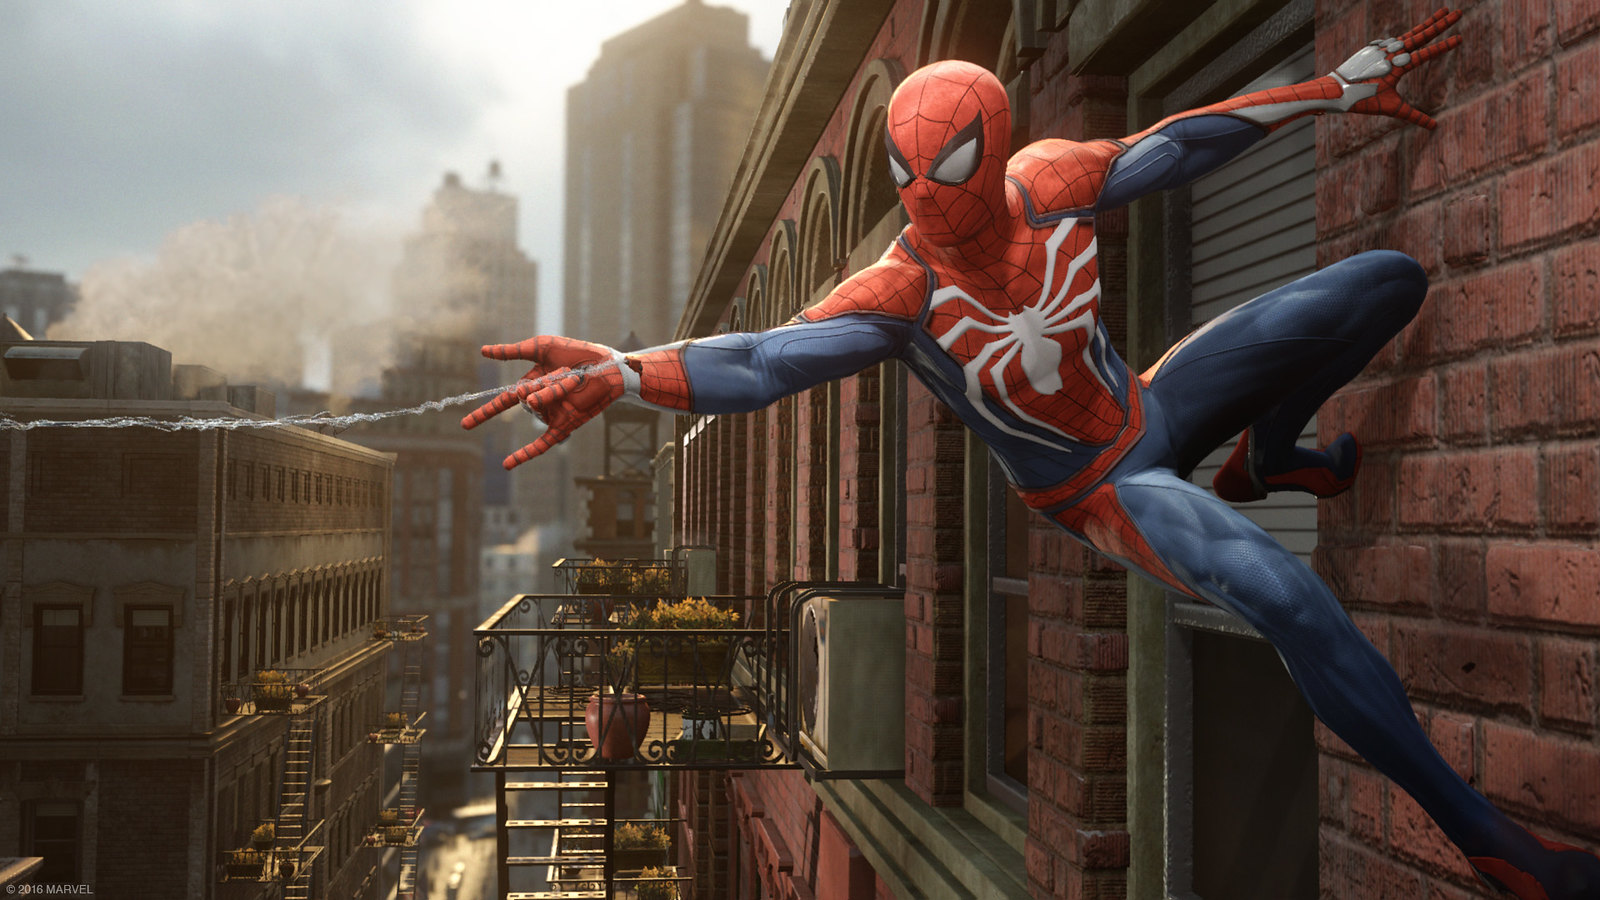 insomniac s new ps4 exclusive spider man game revealed. Black Bedroom Furniture Sets. Home Design Ideas